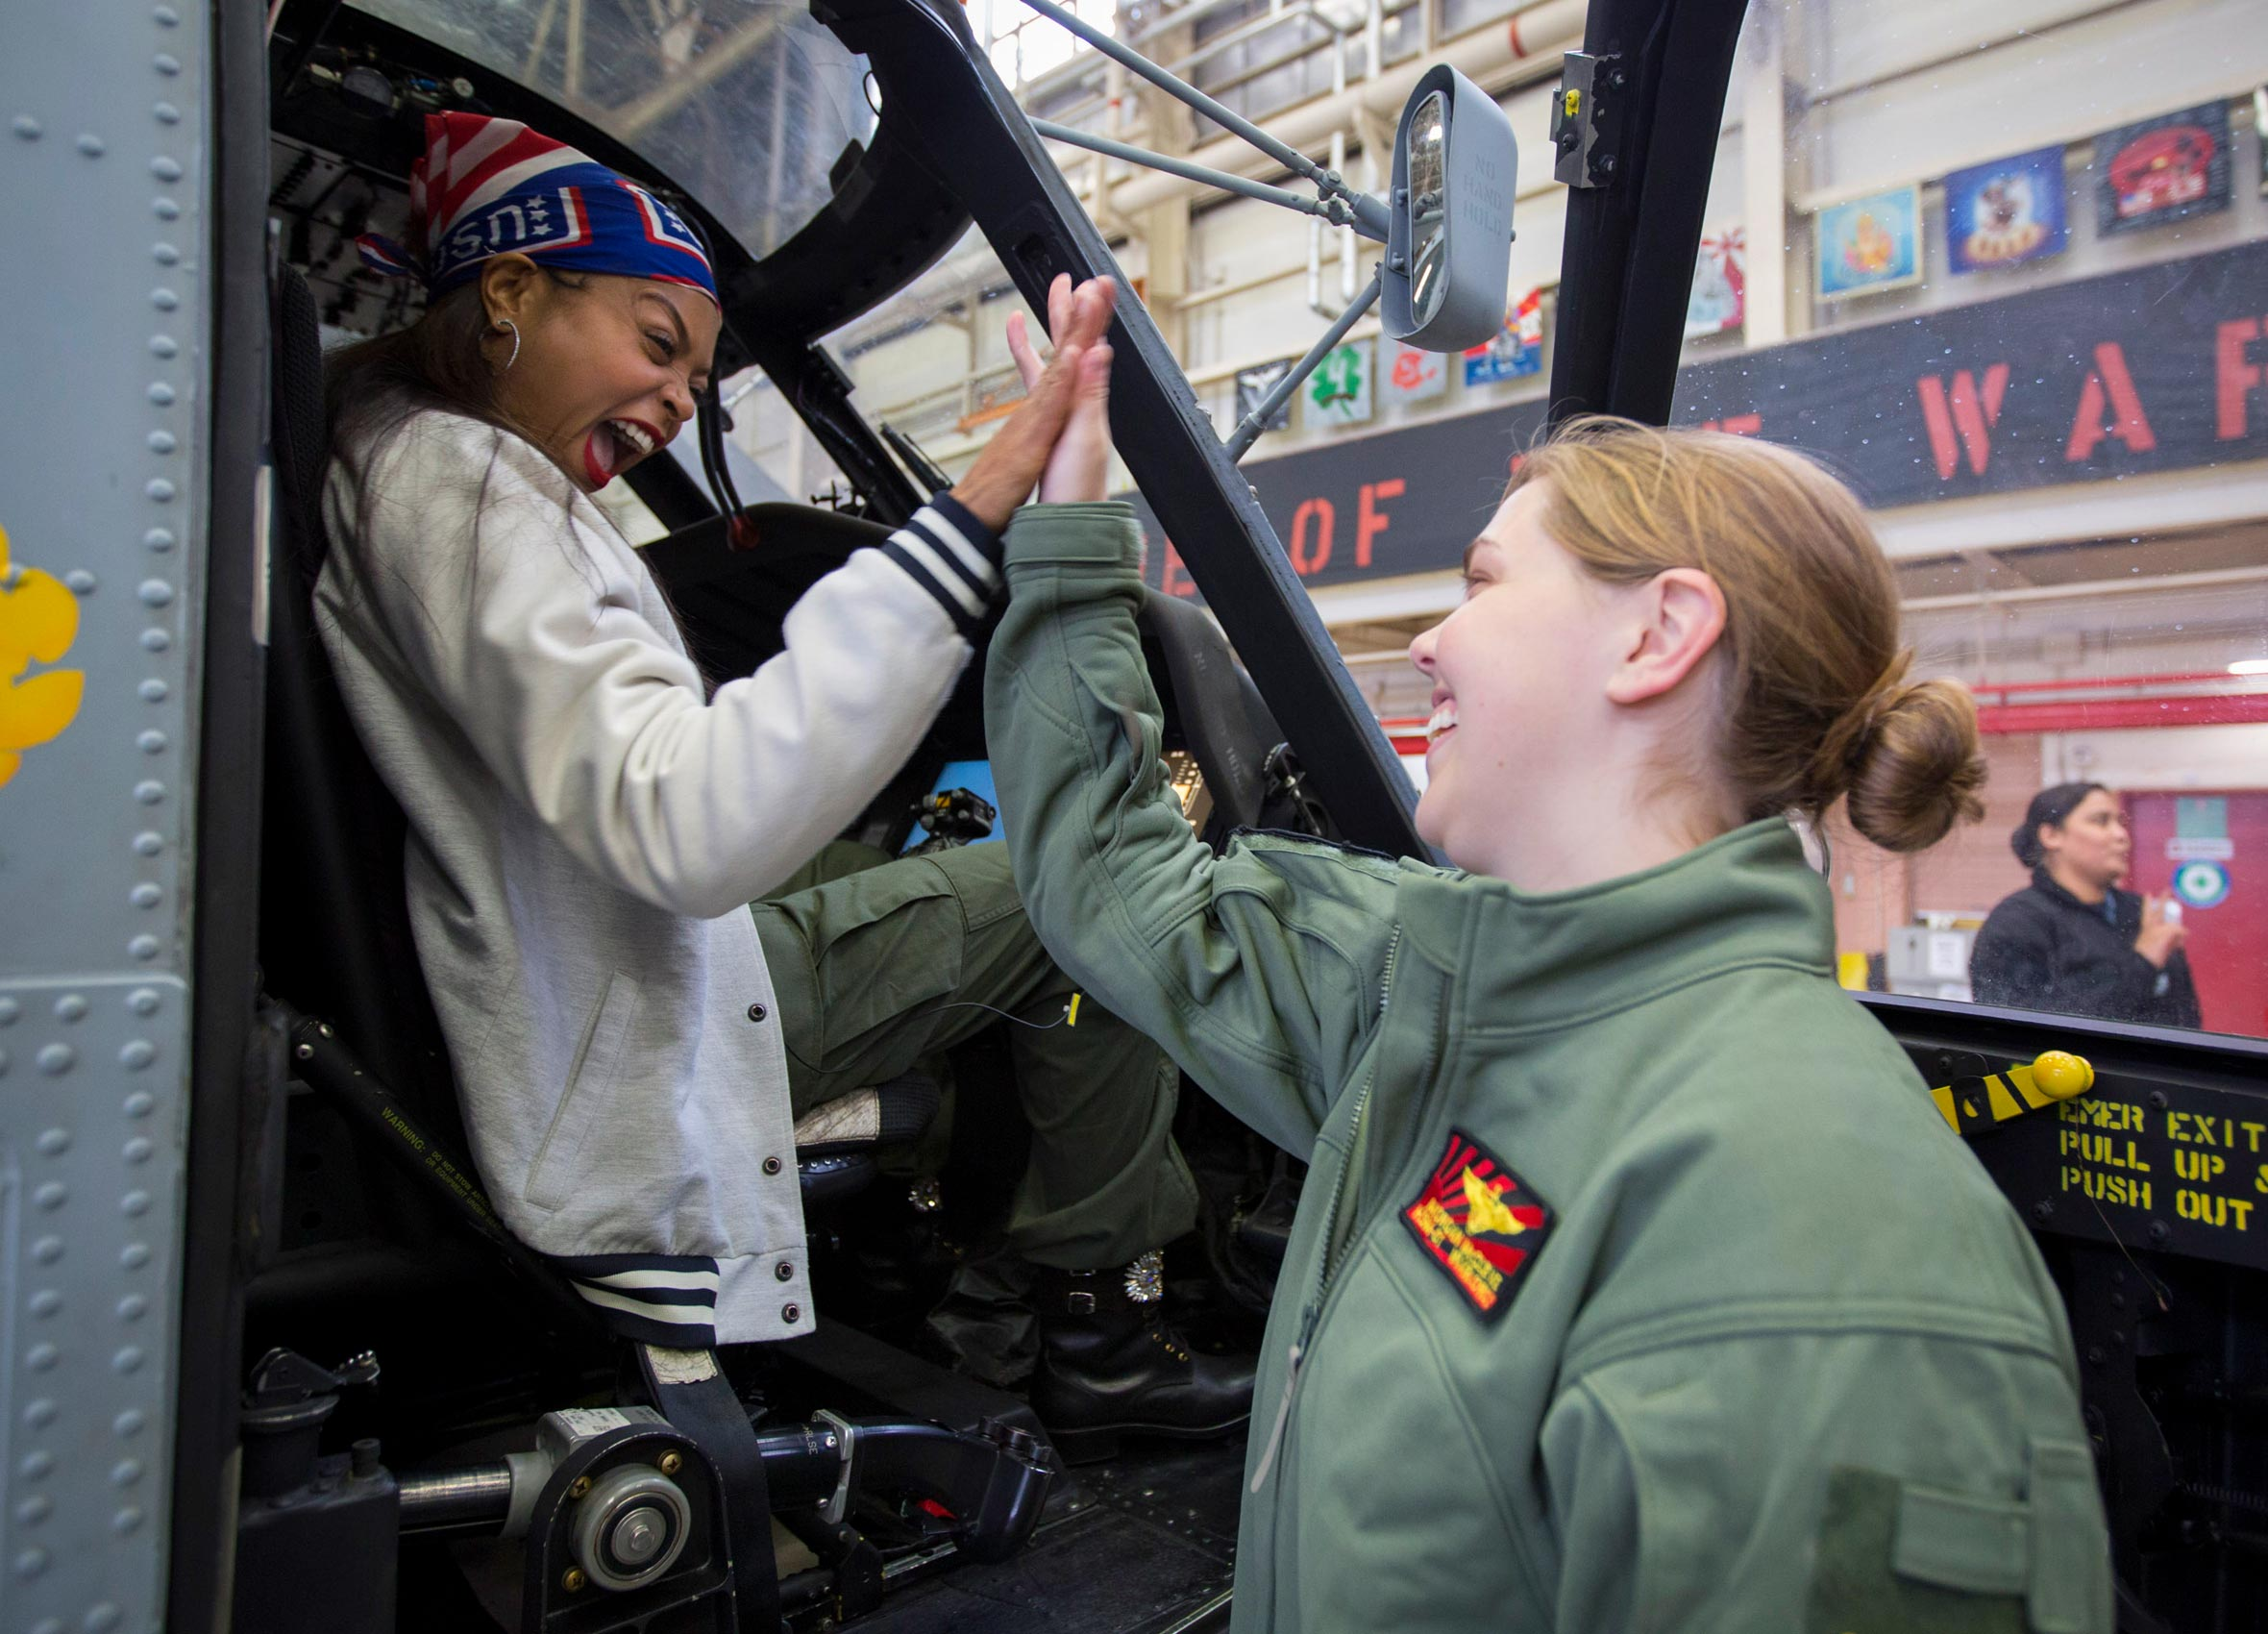 Taraji P. Henson high-fives solider in helicopter